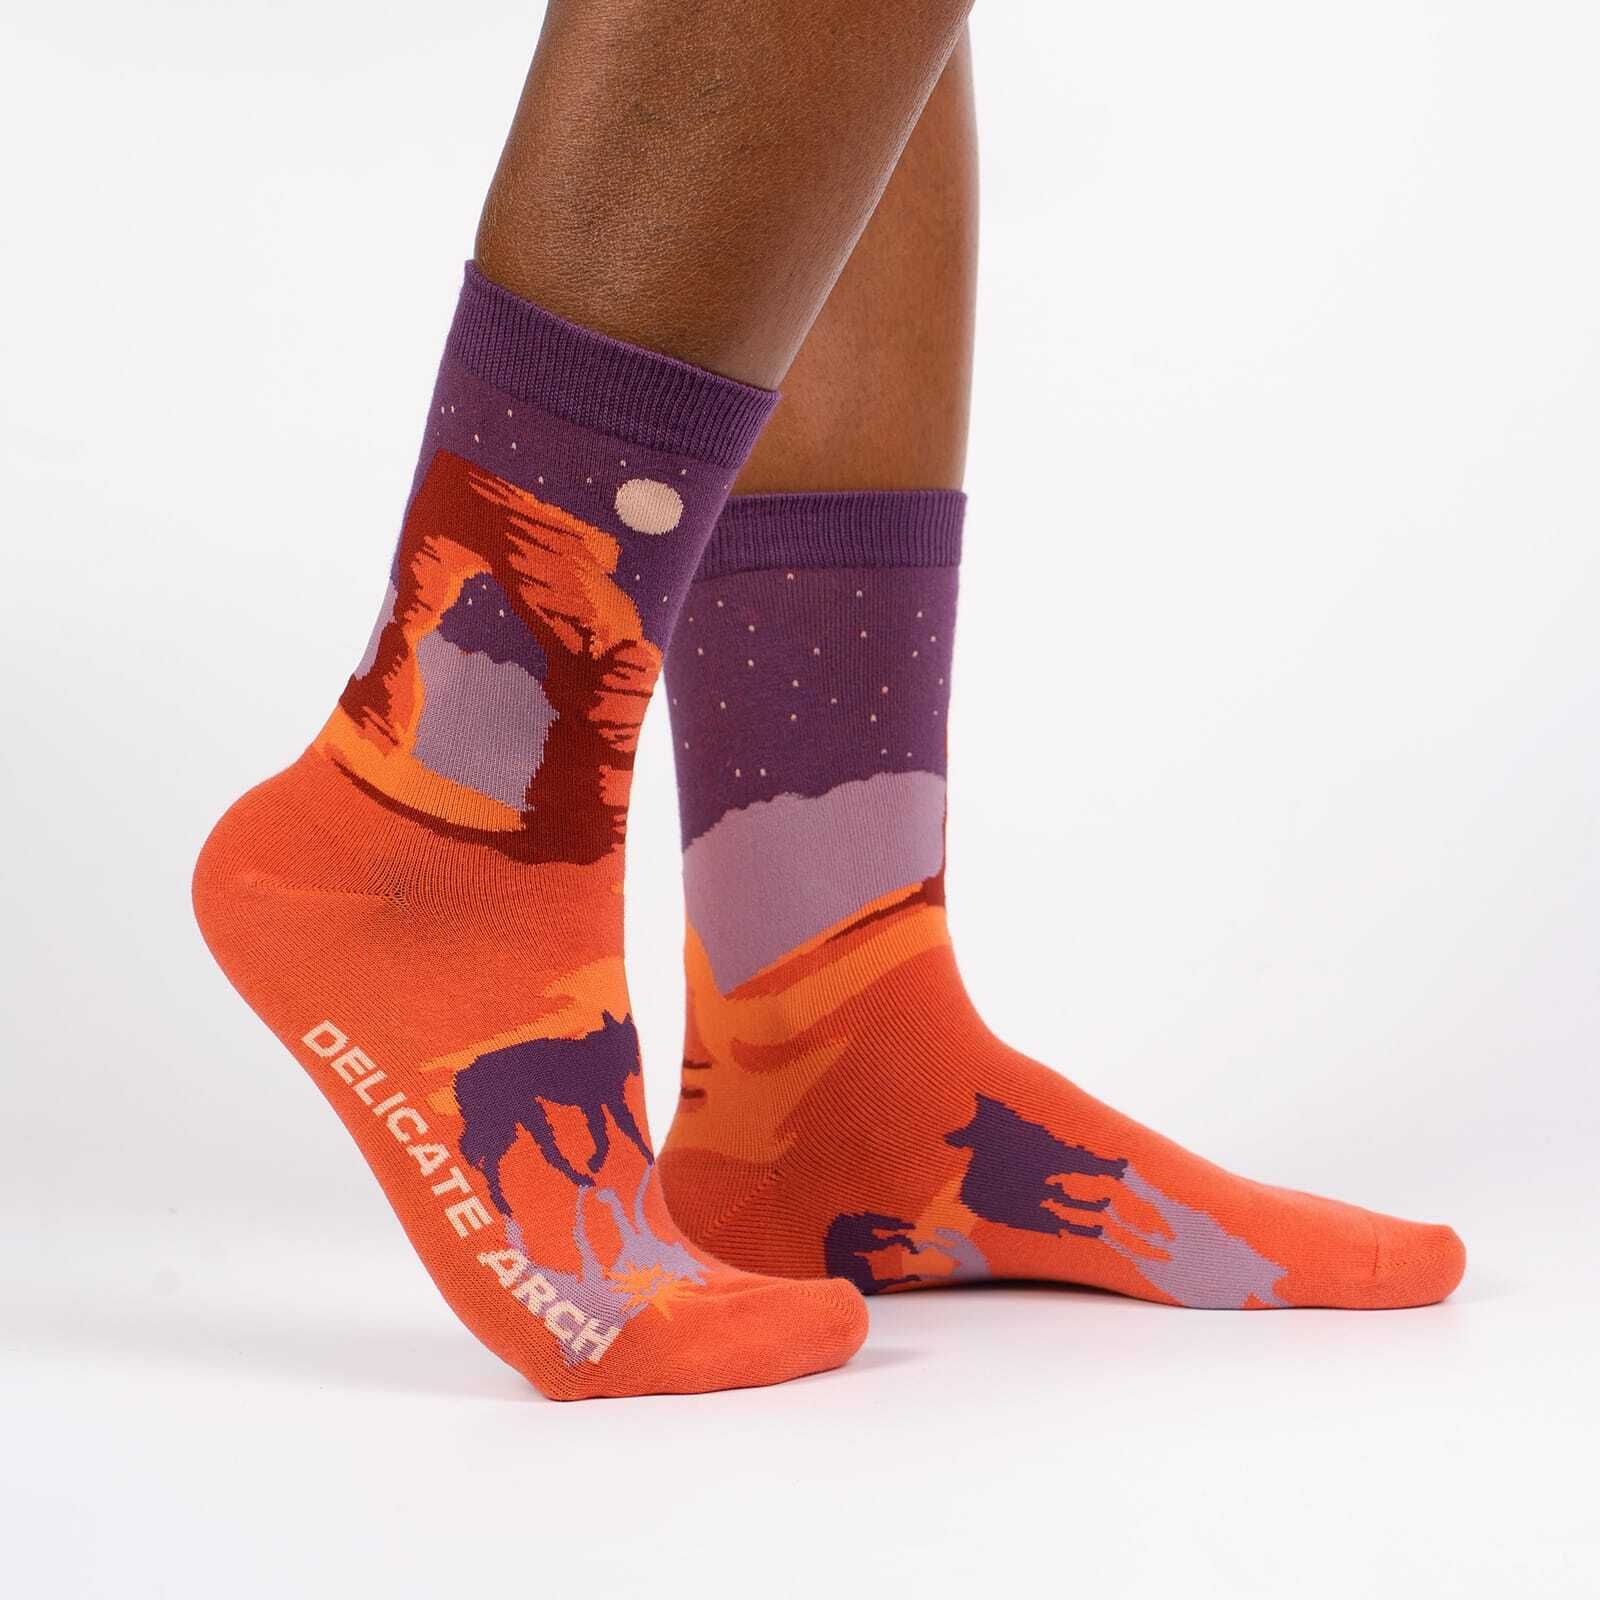 Delicate Arch - Road Trip Travel Crew Socks Orange - Women's in Orange